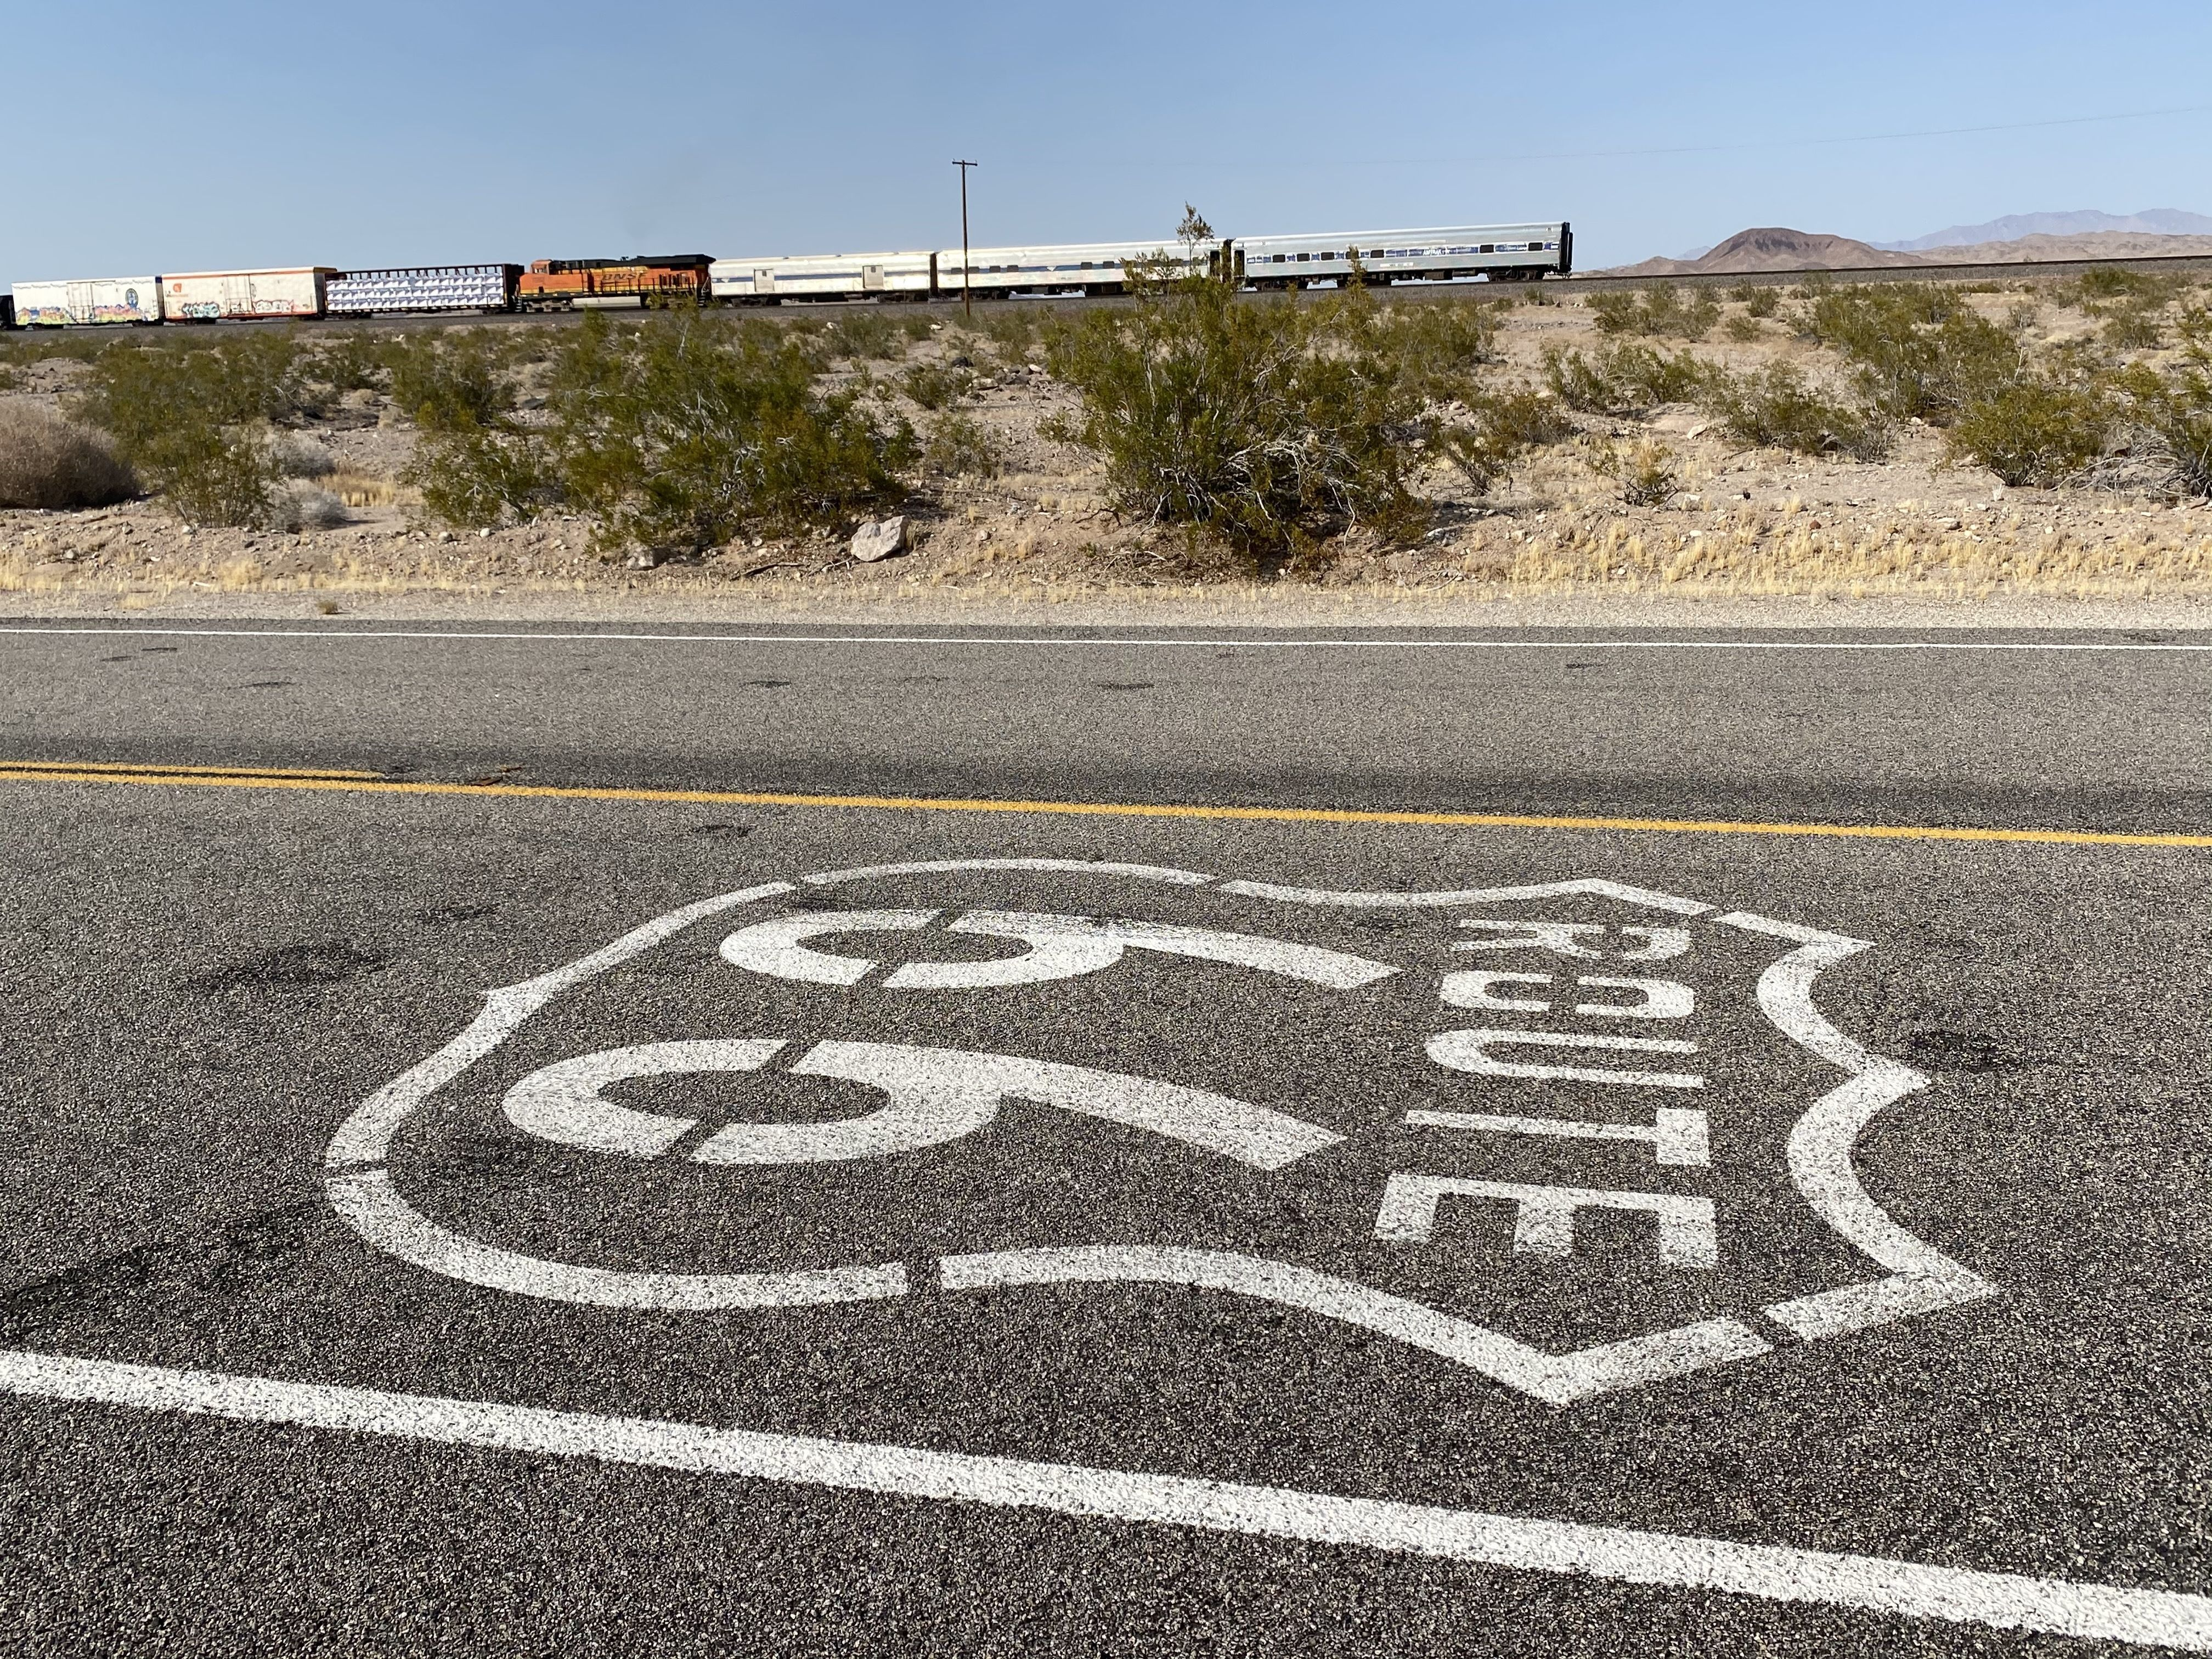 Support Railcars Along Route 66